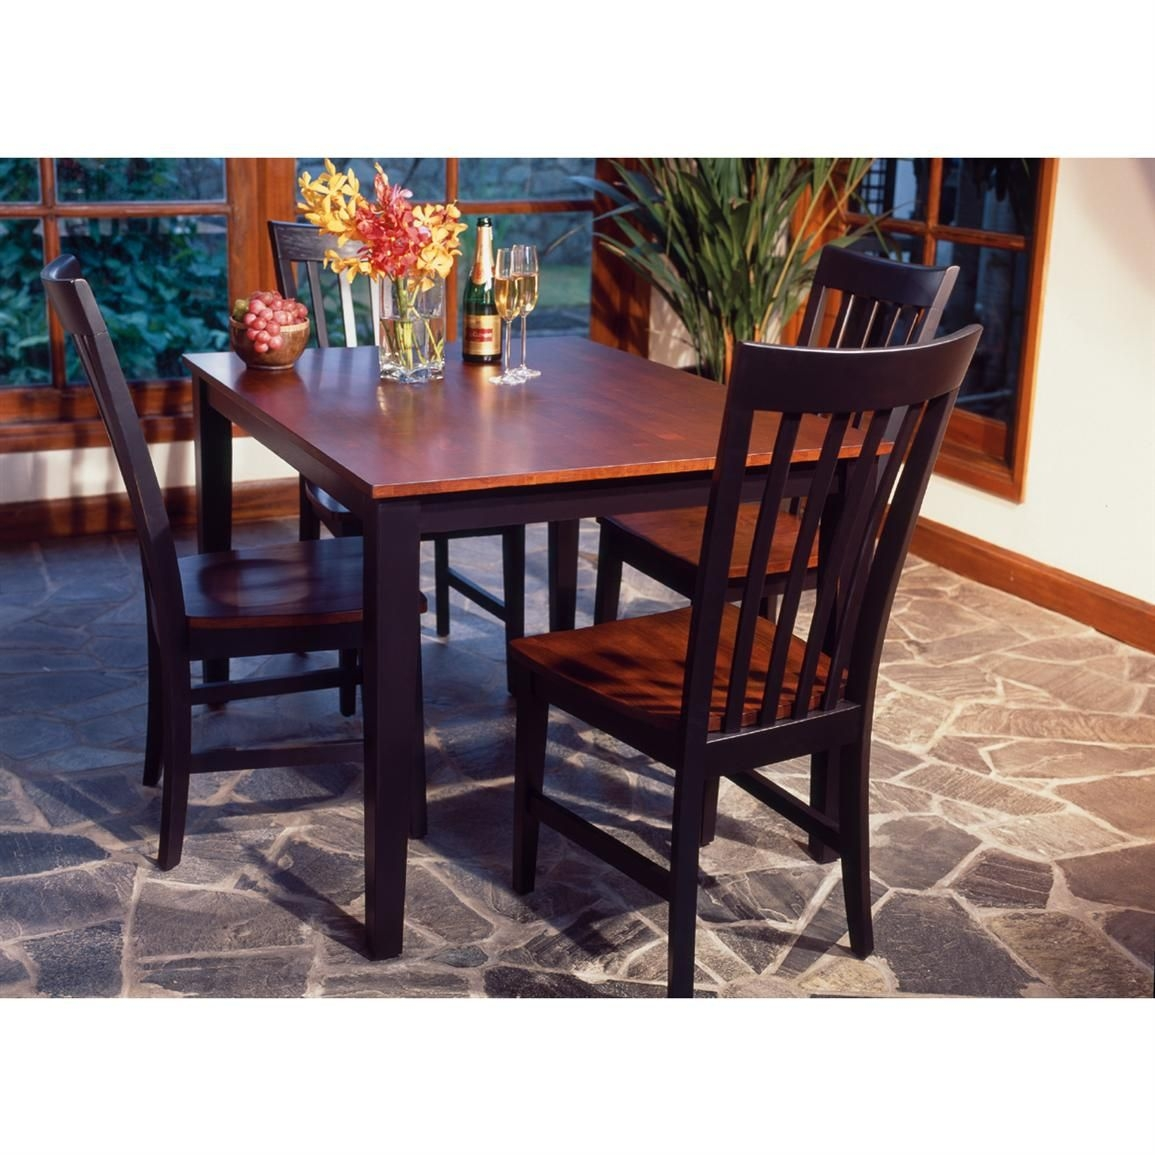 Home Styles™ Rectangular Dining Table With 4 Chairs Black  Cherry  39786 Kitchen  Dining